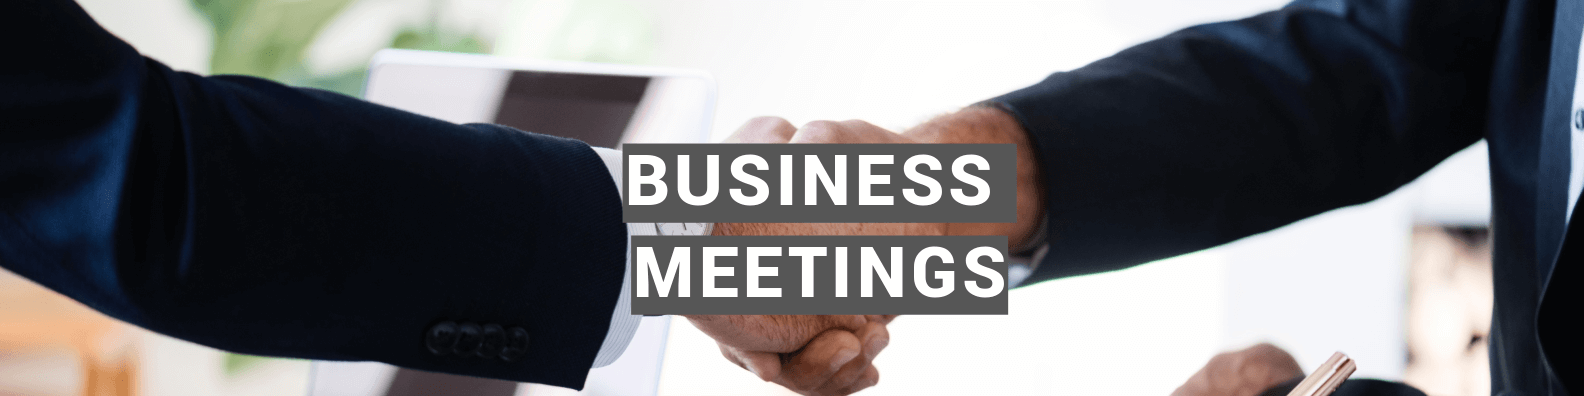 Chinese Interpreters for Business Meetings